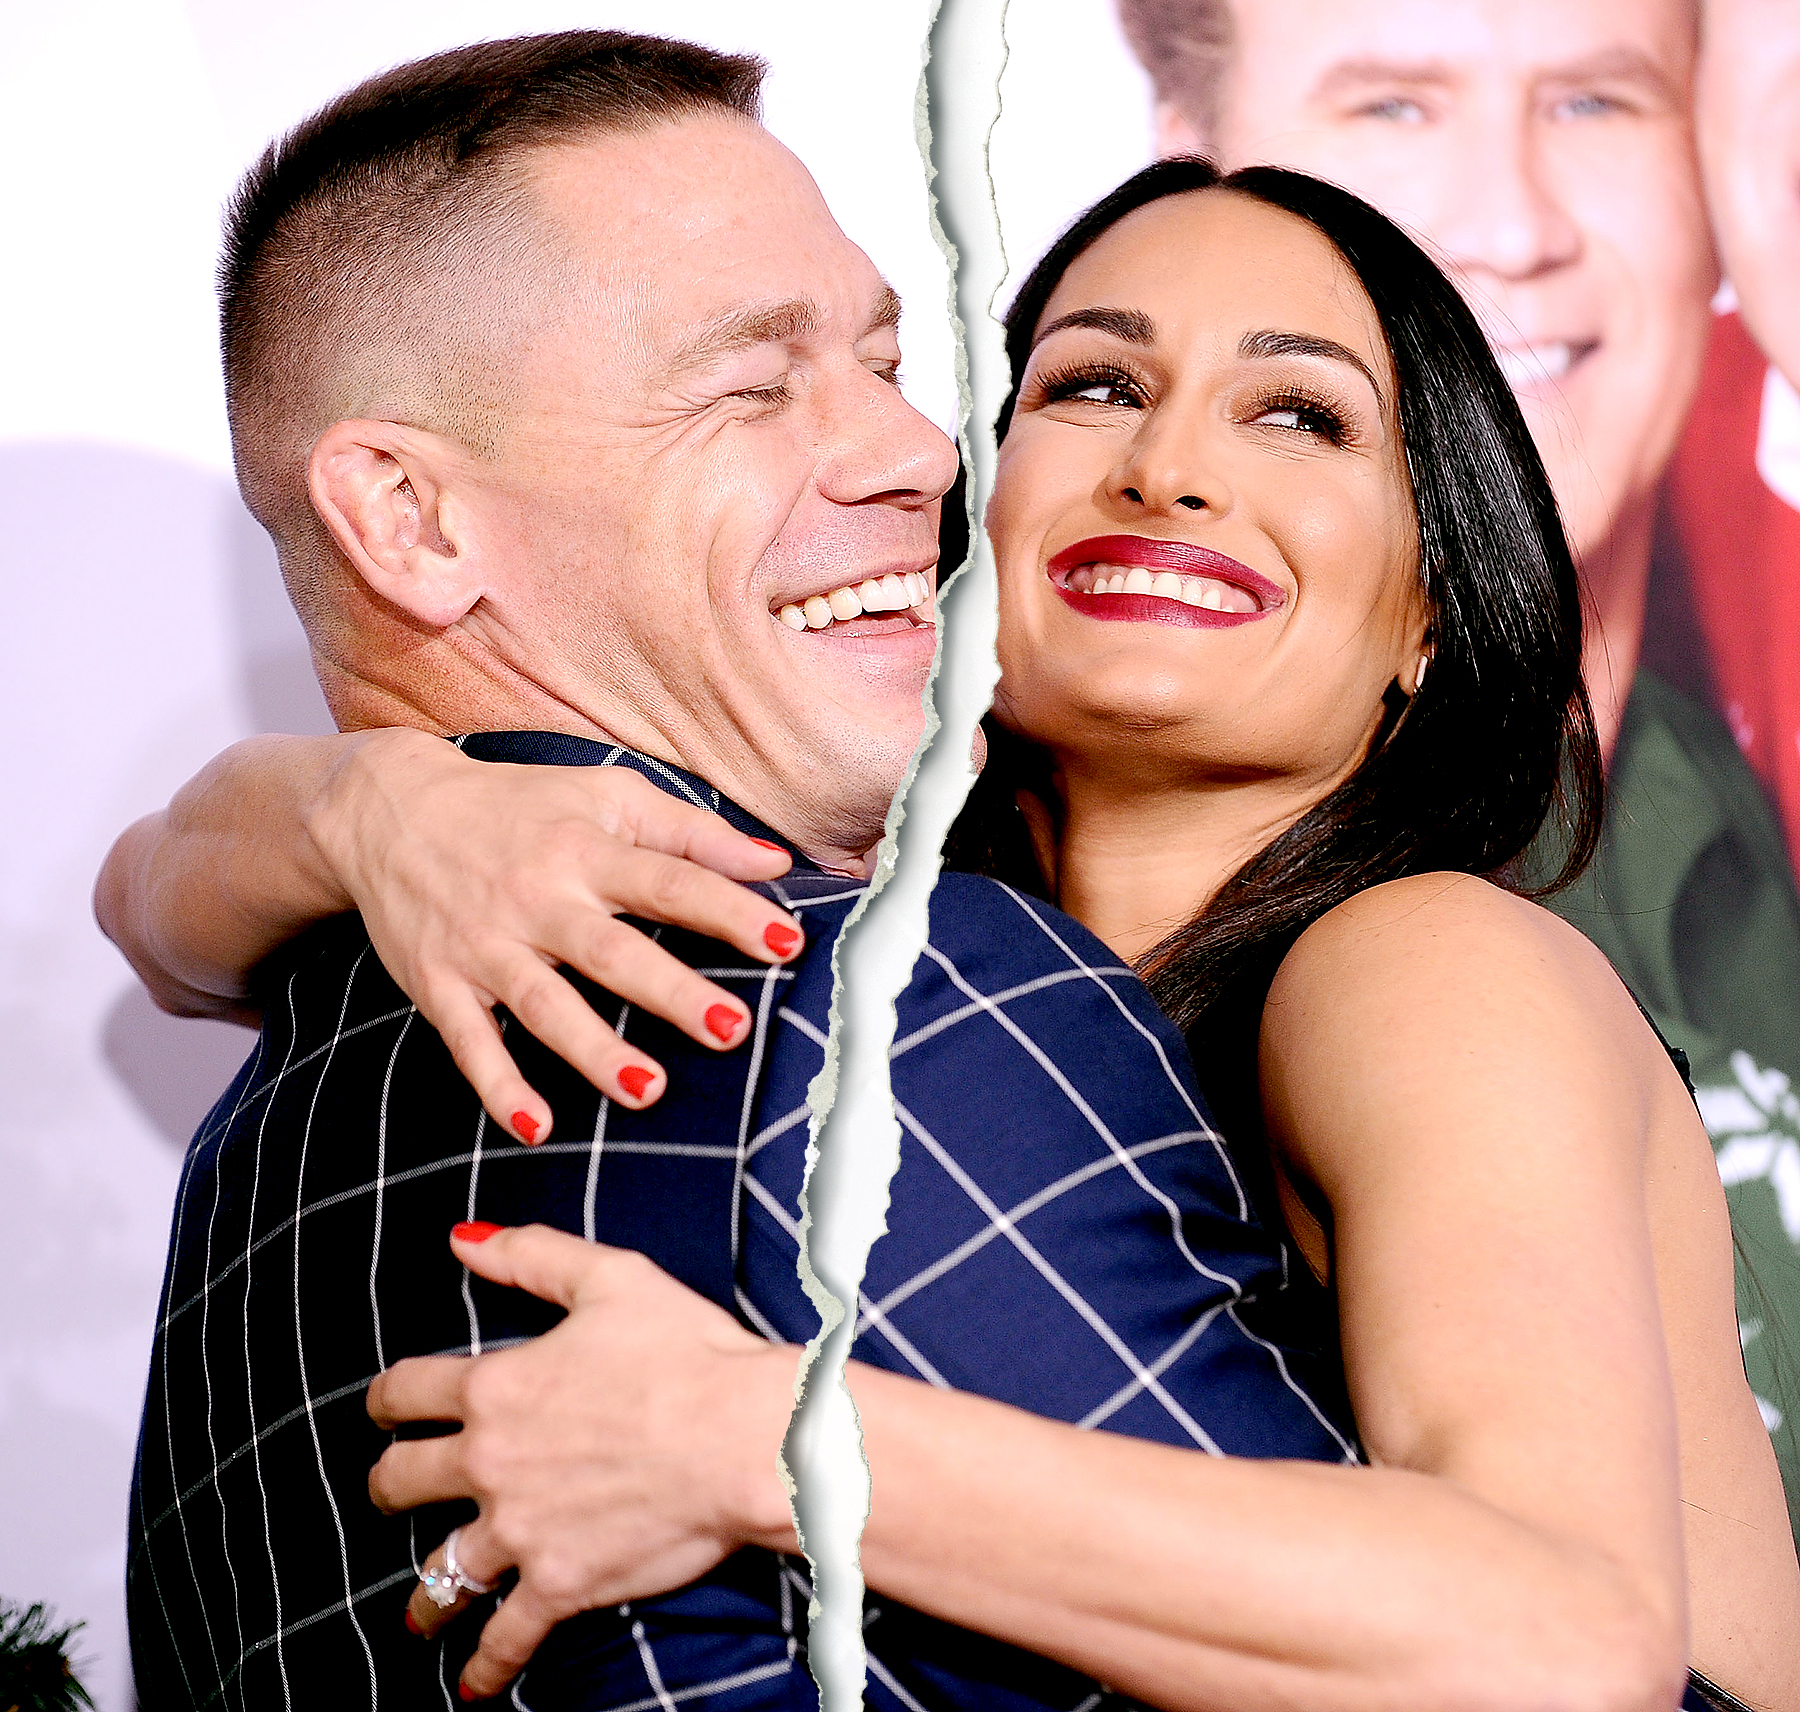 John and nikki bella still dating